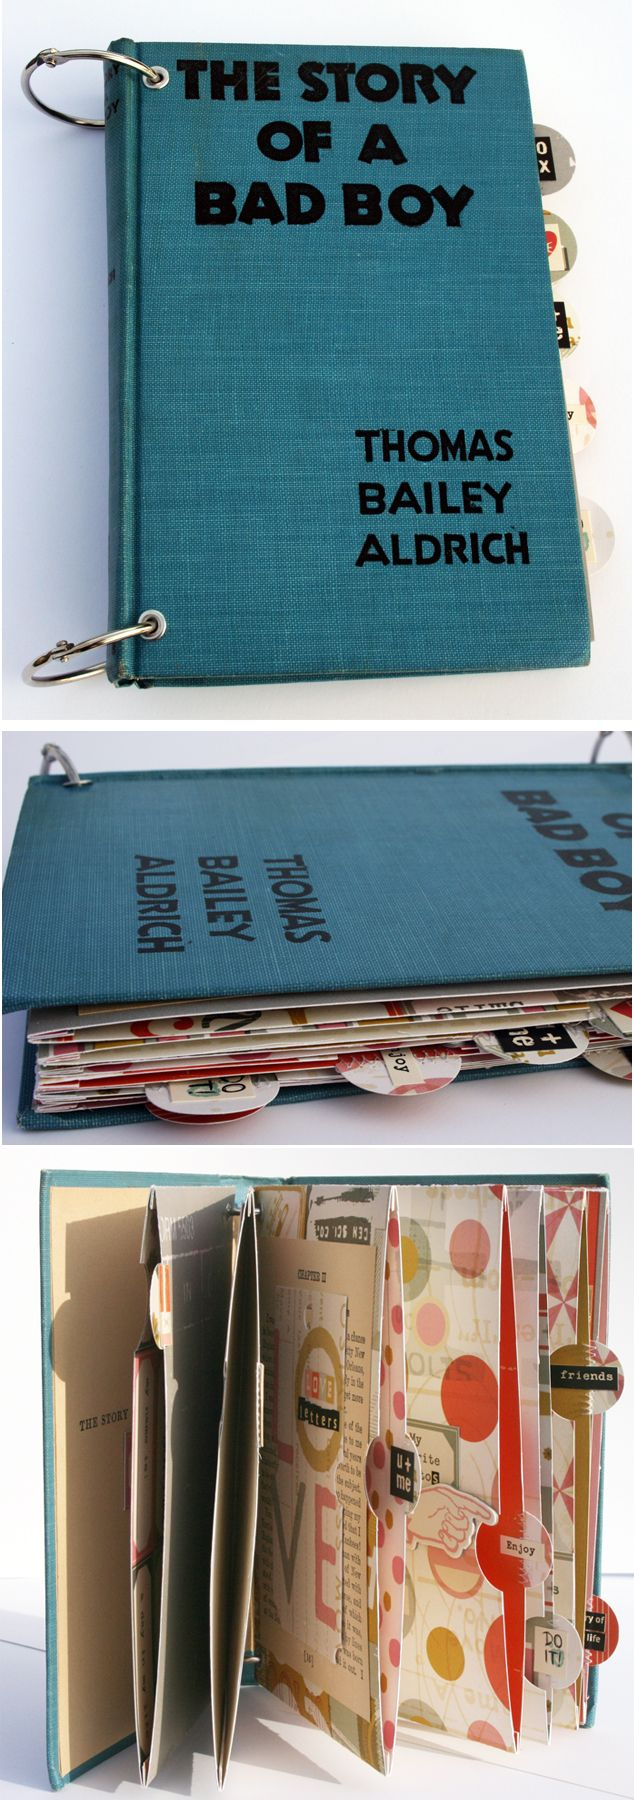 Scrapbook ideas recycled - Recycling Book Covers Into Journals Etc Scrapbook Albumsscrapbook Photosscrapbooking Ideasjunk